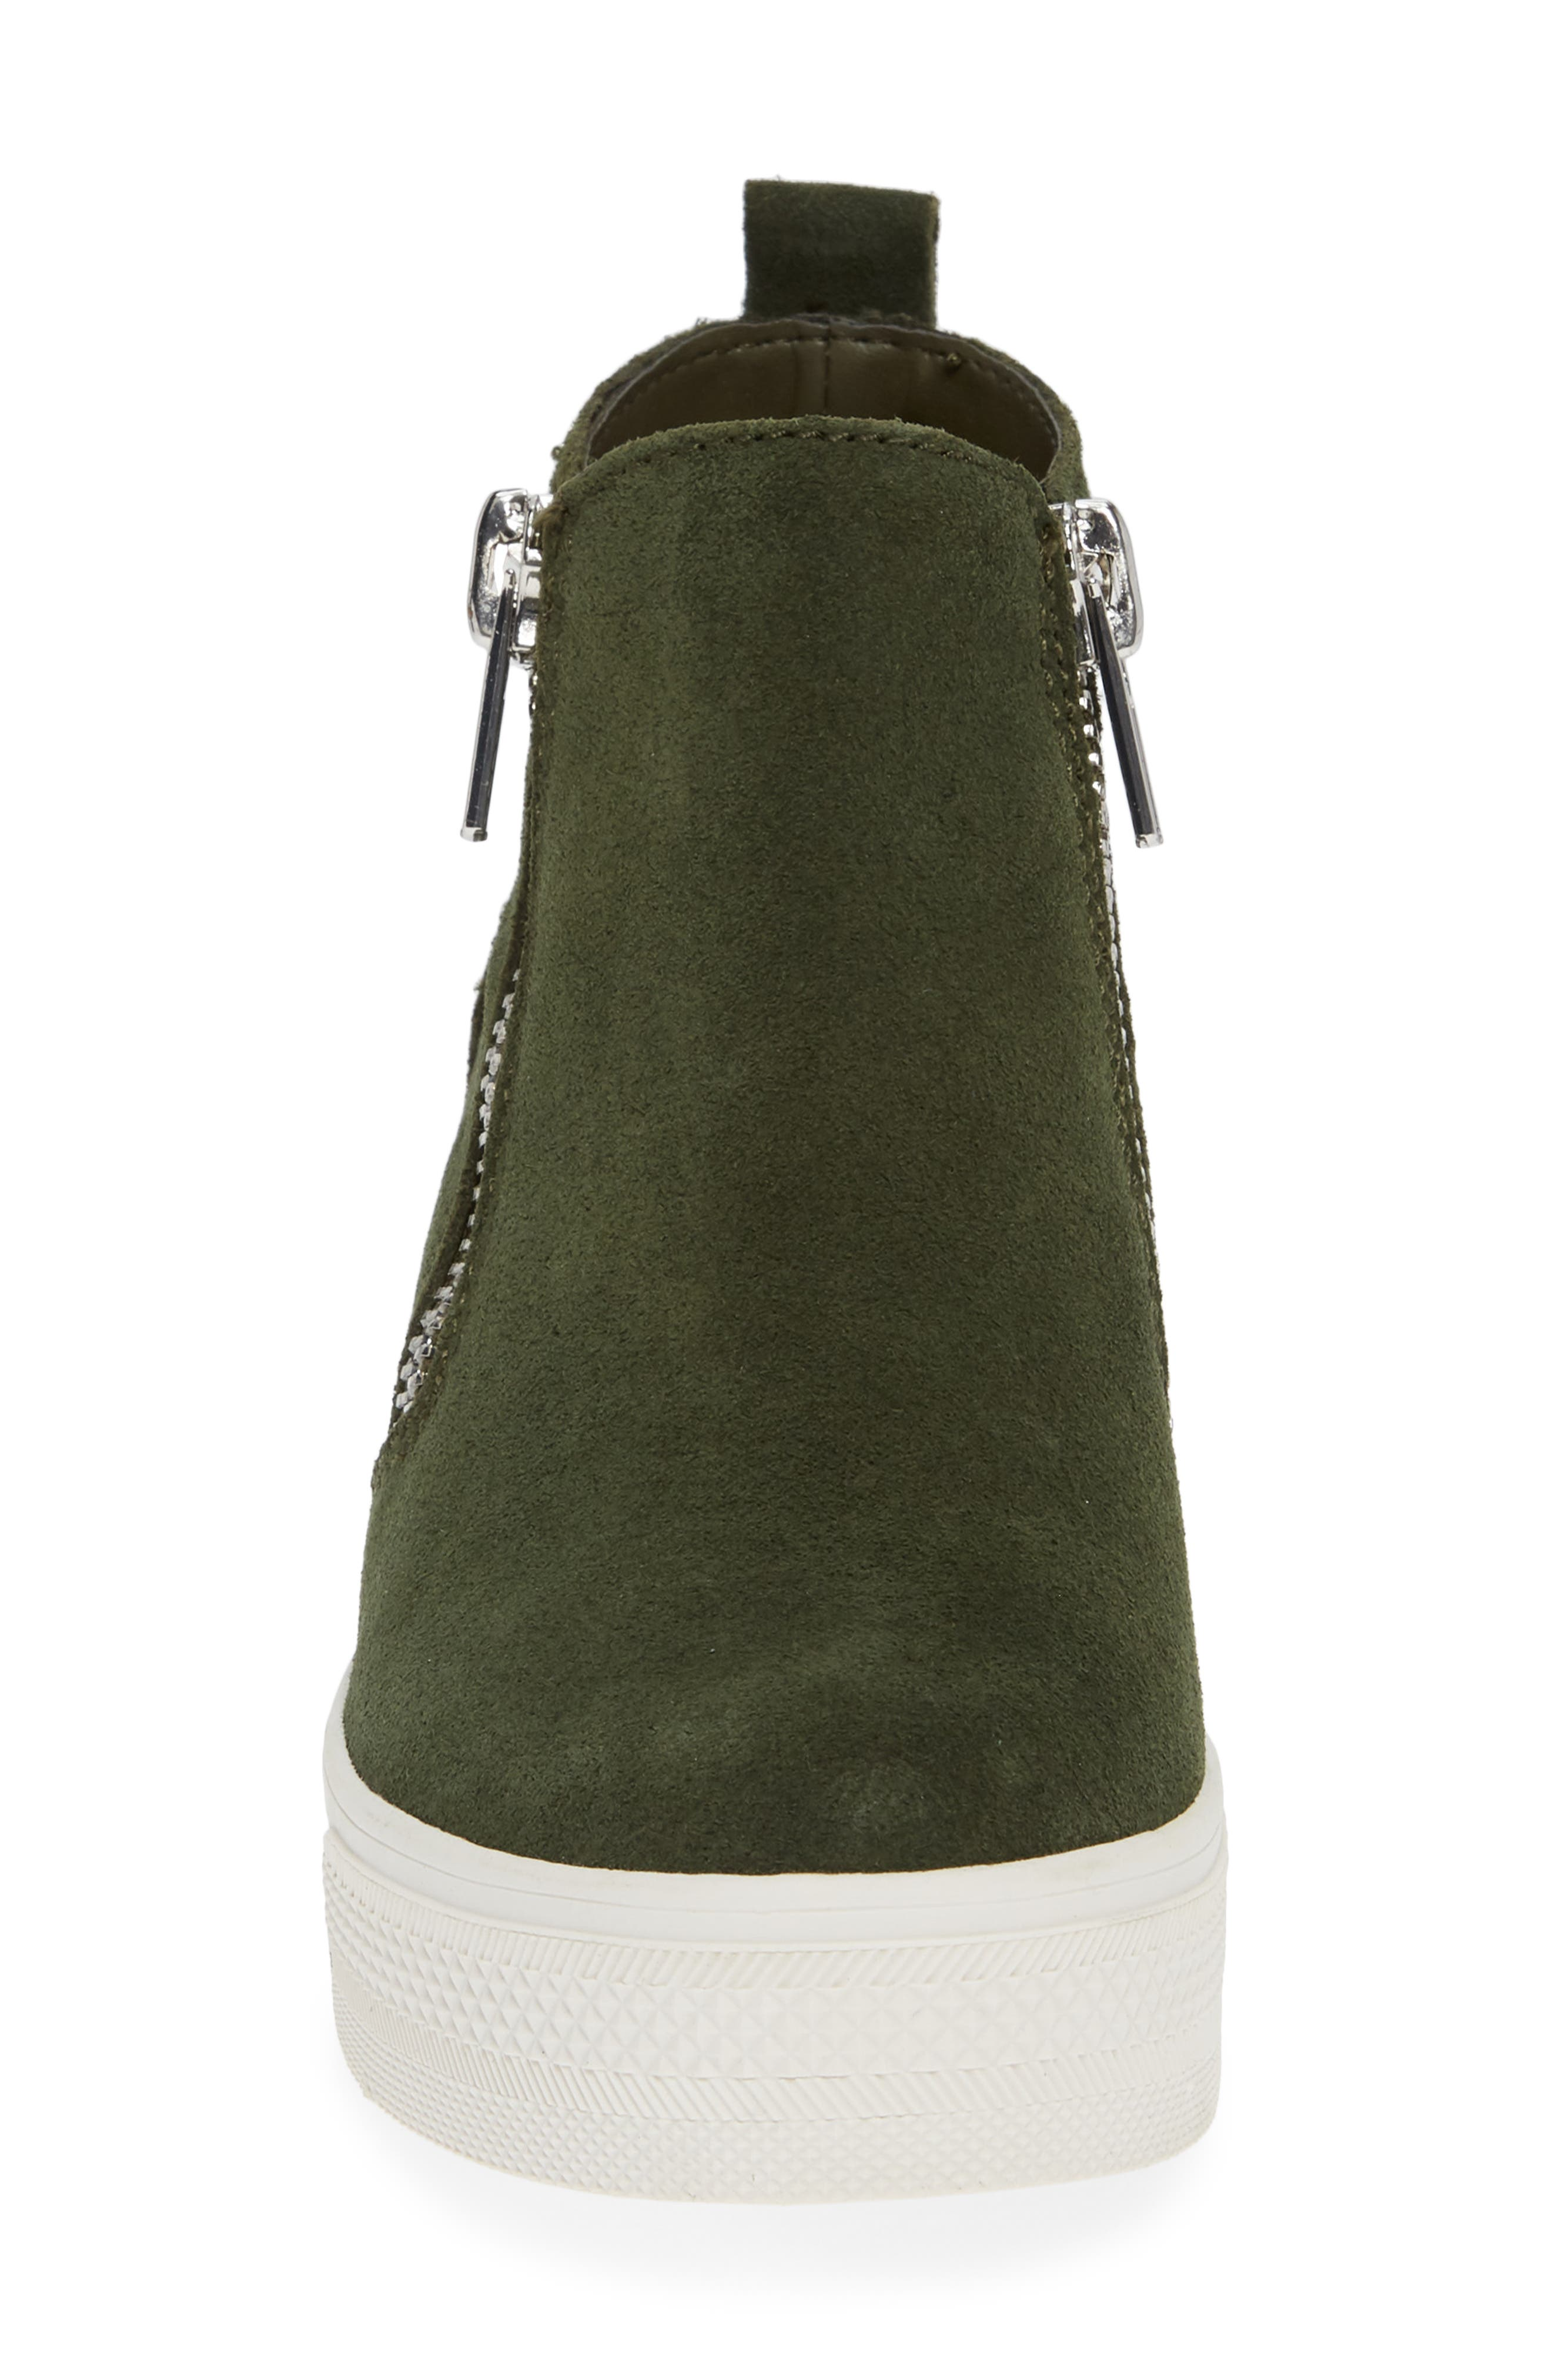 Wedgie High Top Platform Sneaker,                             Alternate thumbnail 3, color,                             Olive/ Olive Suede